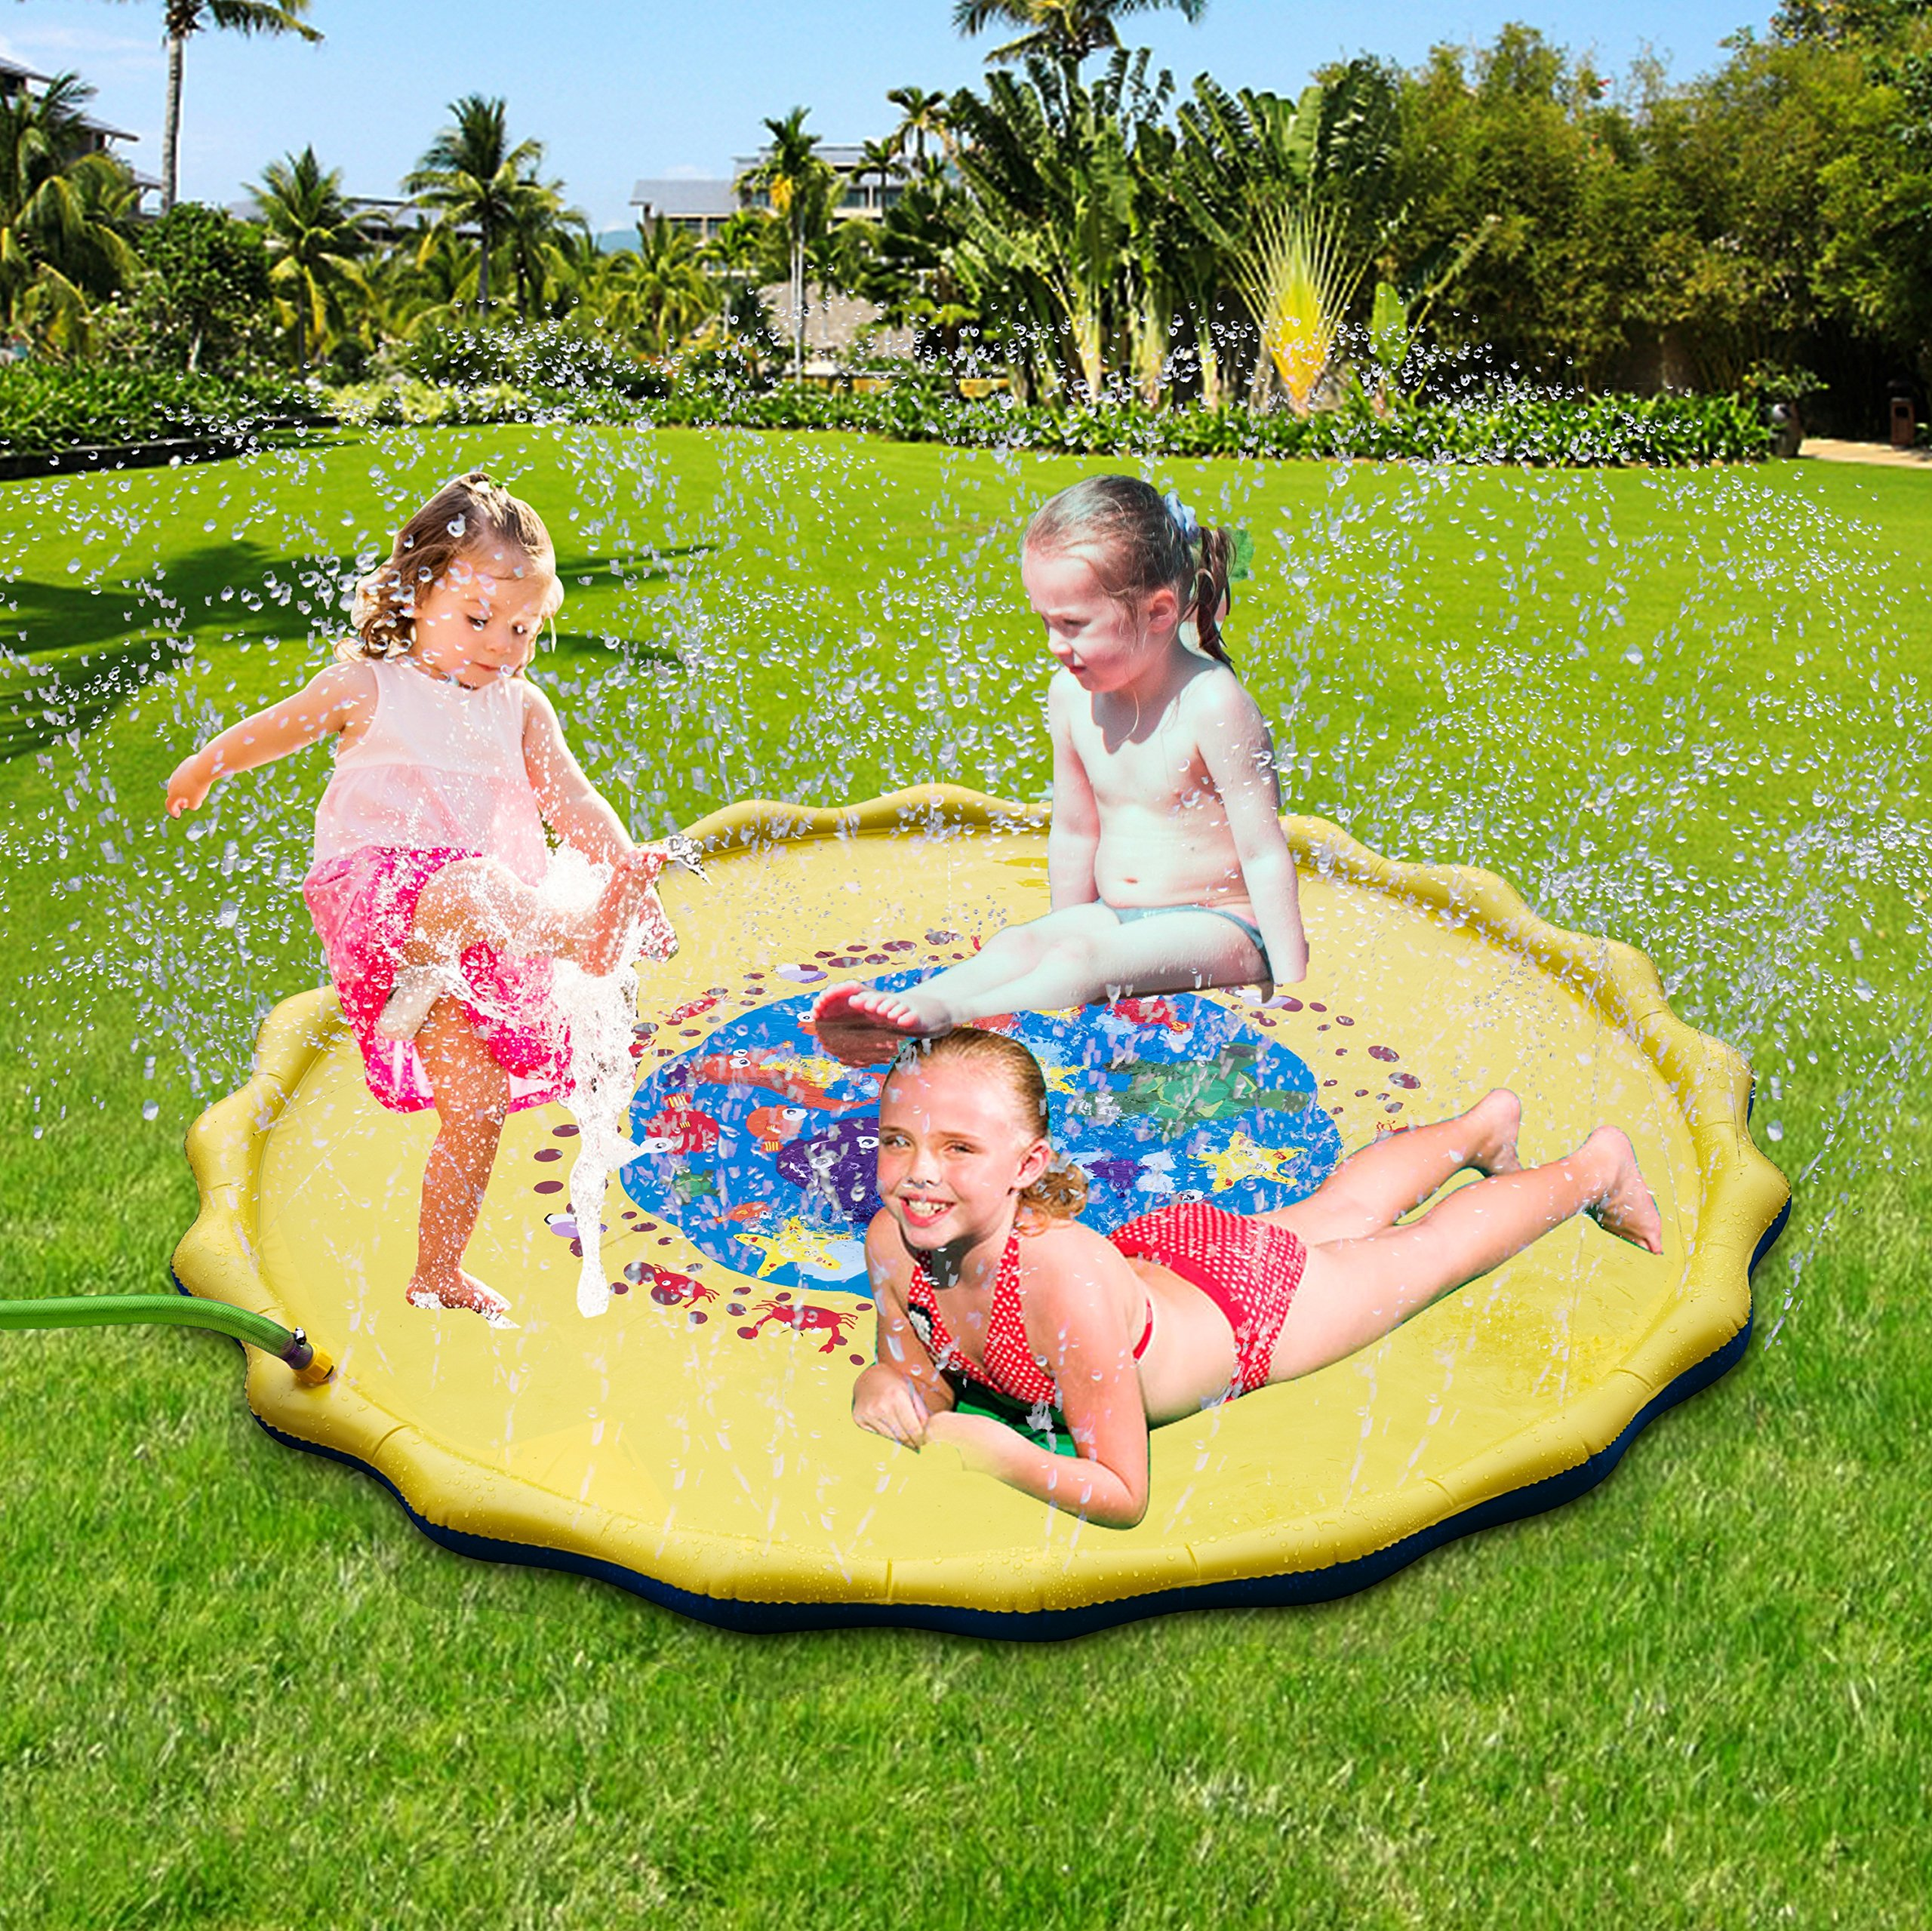 FitMaker Sprinkle and Splash Play Mat, 67 in-Diameter Sprinkle N Splash, Fill N Fun Water Mat Toy for Baby, Kid, Child